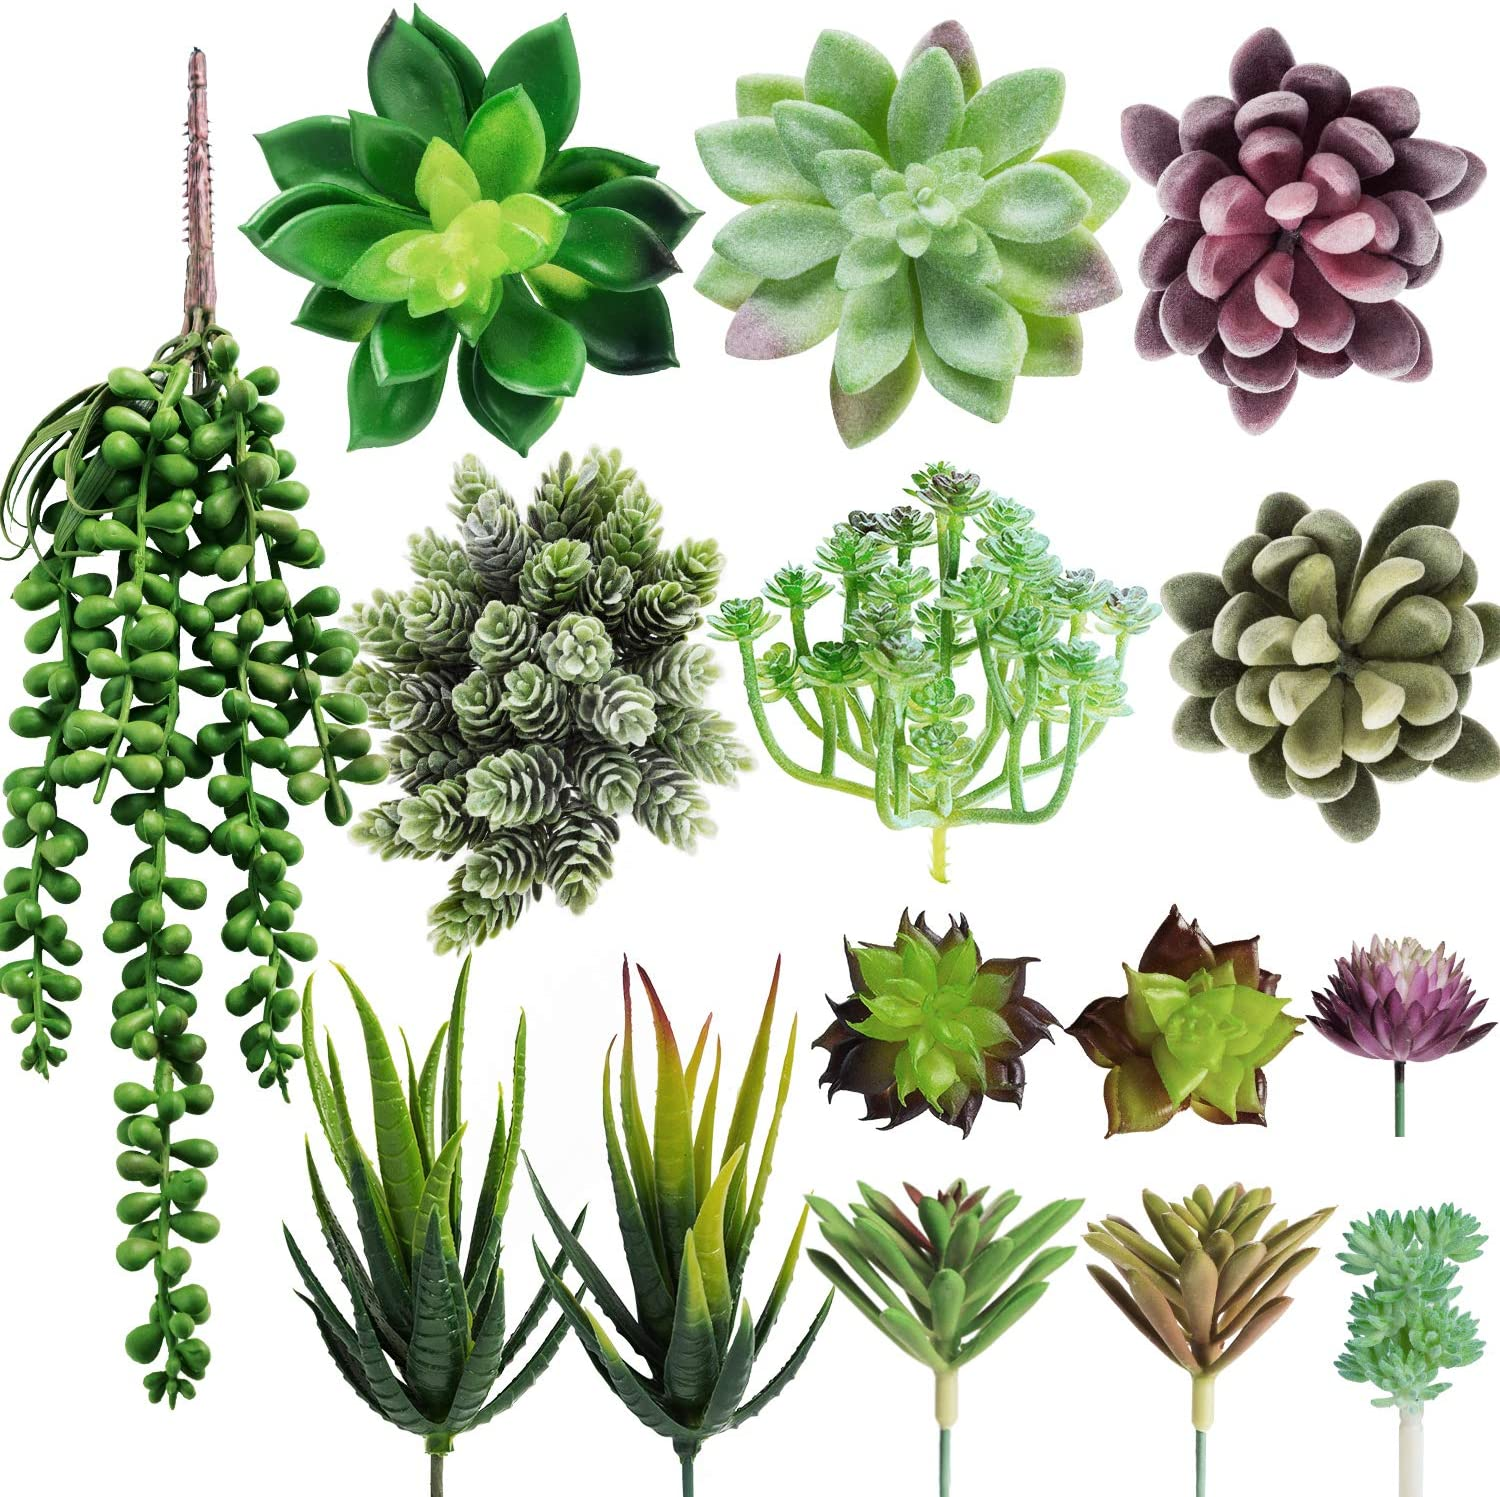 MoonLa Artificial Fake Succulent Plants Assorted 15Pcs Unpotted Face Succulent Plants Textured Faux Succulent Picks Faux Aloe Cactus String of Pearls Floral Arrangement Accent